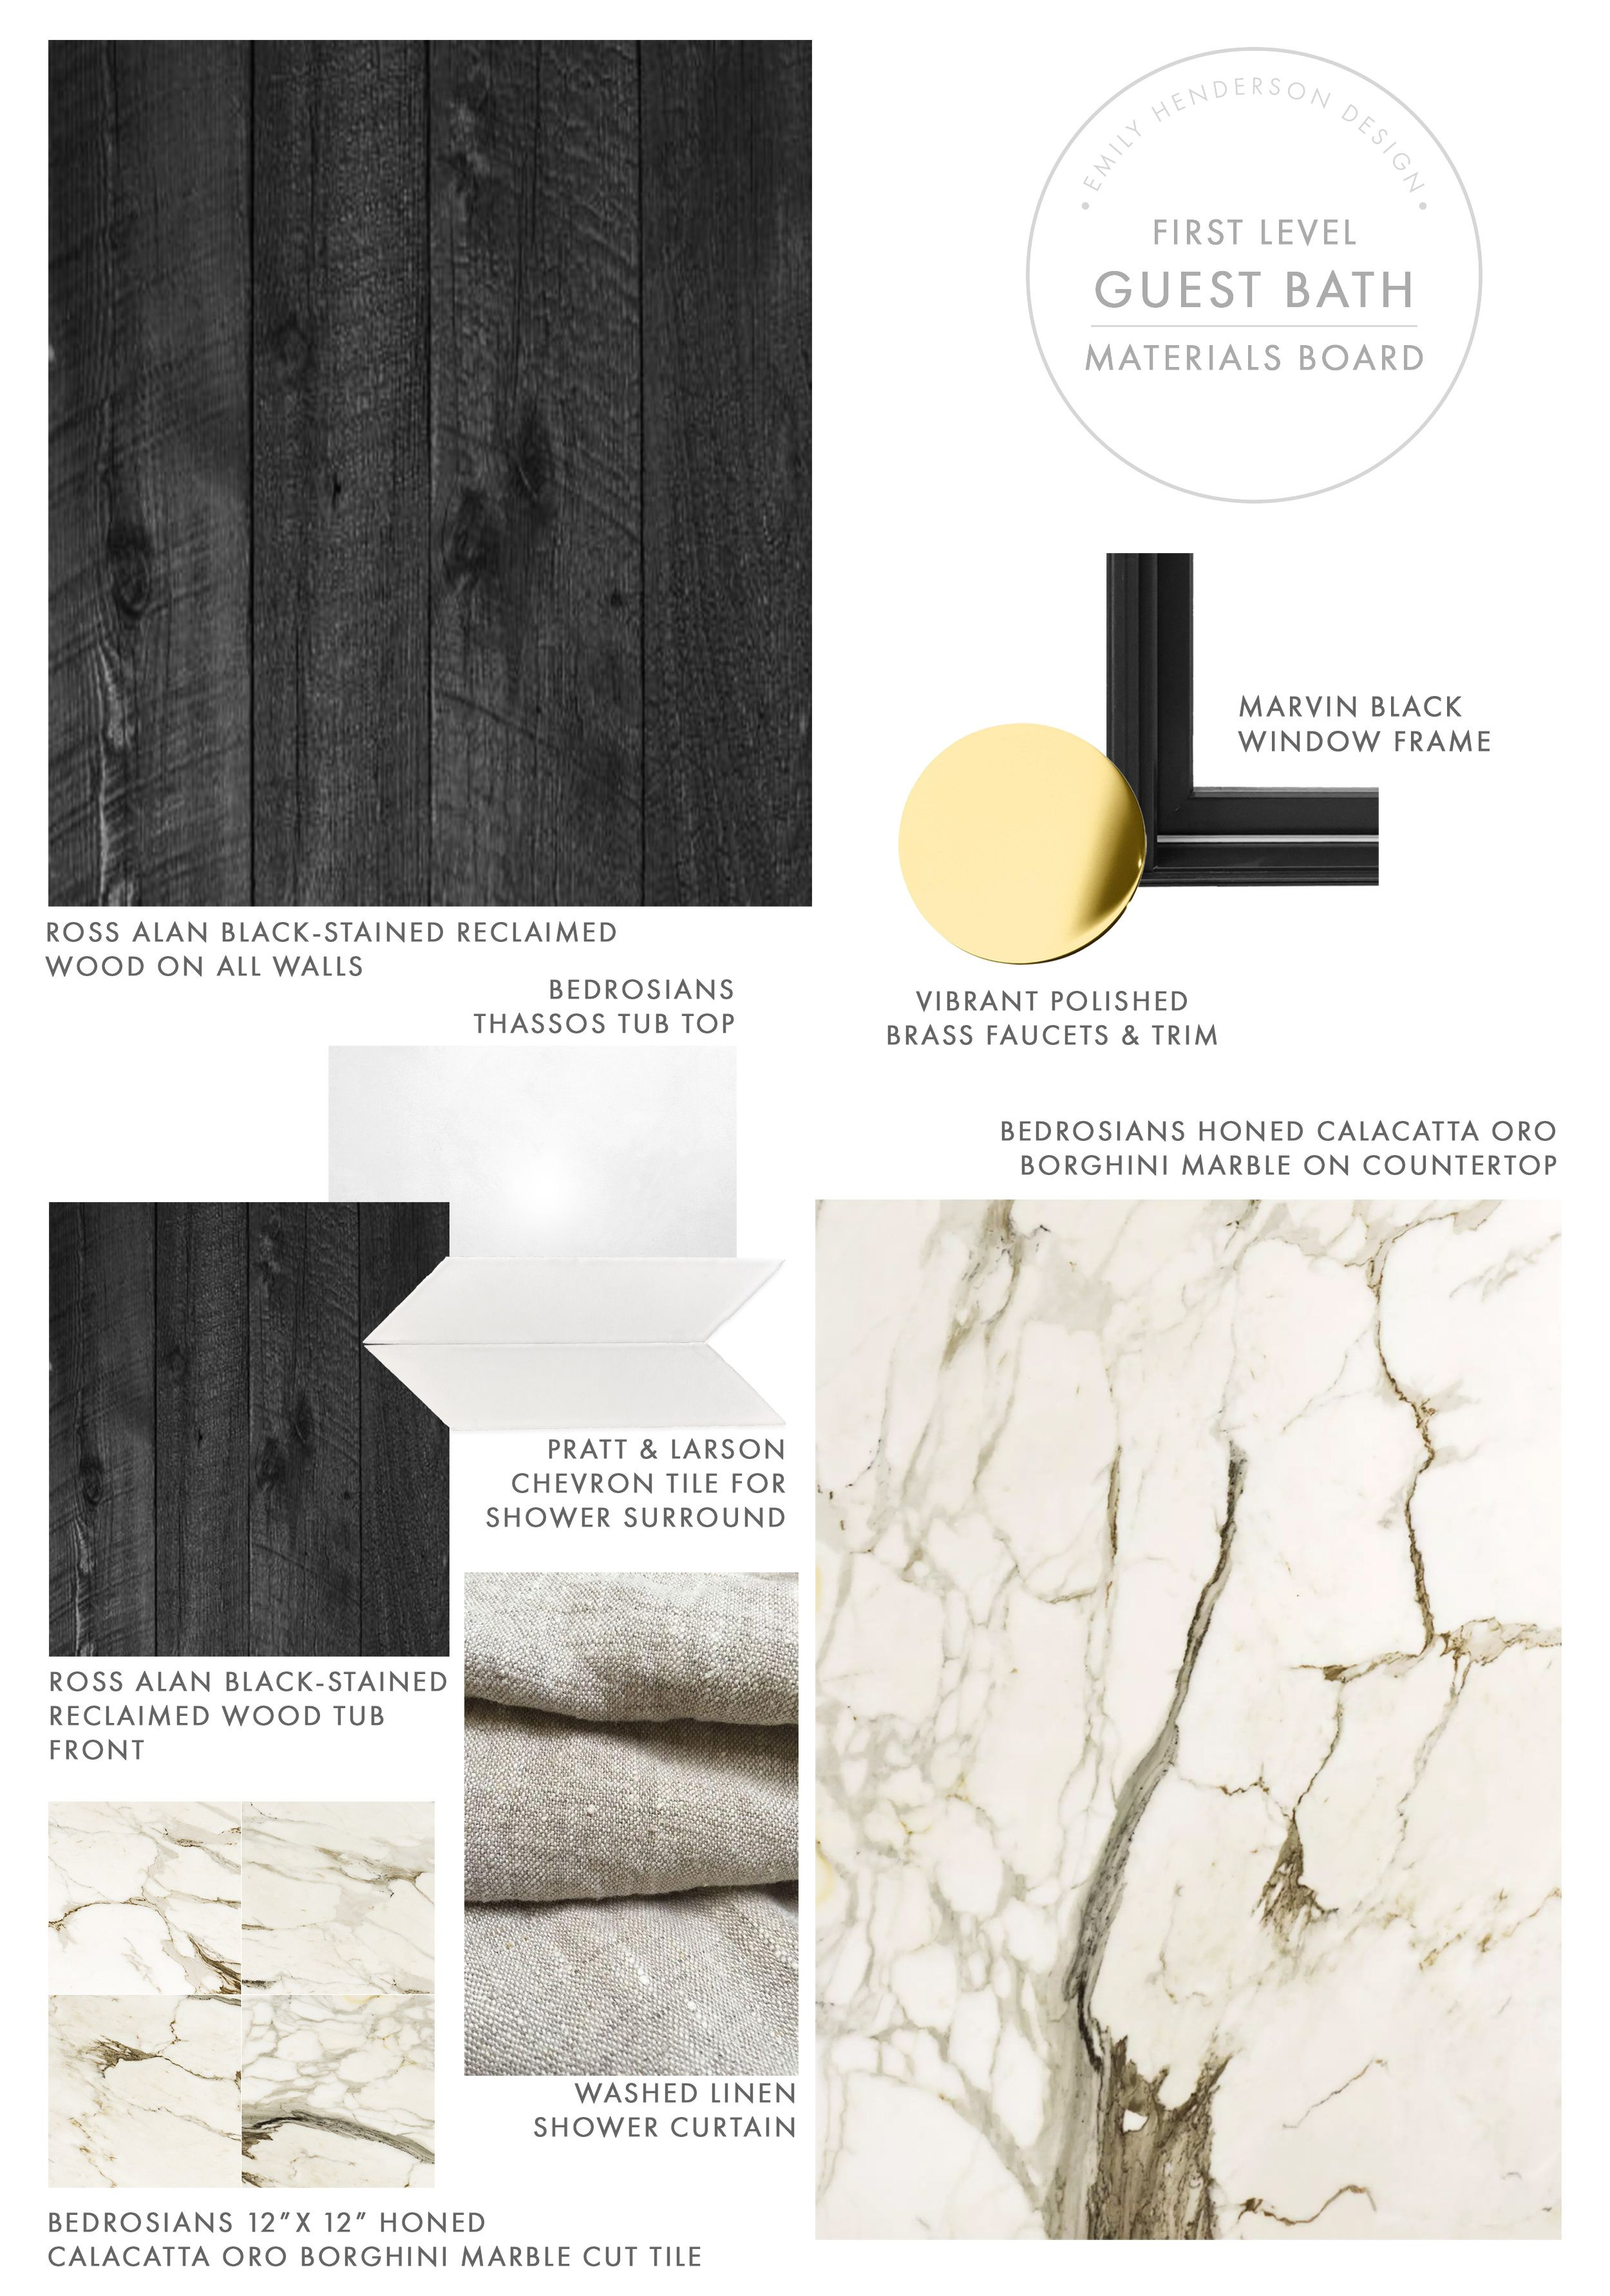 Dramatic Bathroom Remodel Ideas How We Designed The First Level Guest Bath Bathrooms Remodel Remodeling Hacks Guest Bath